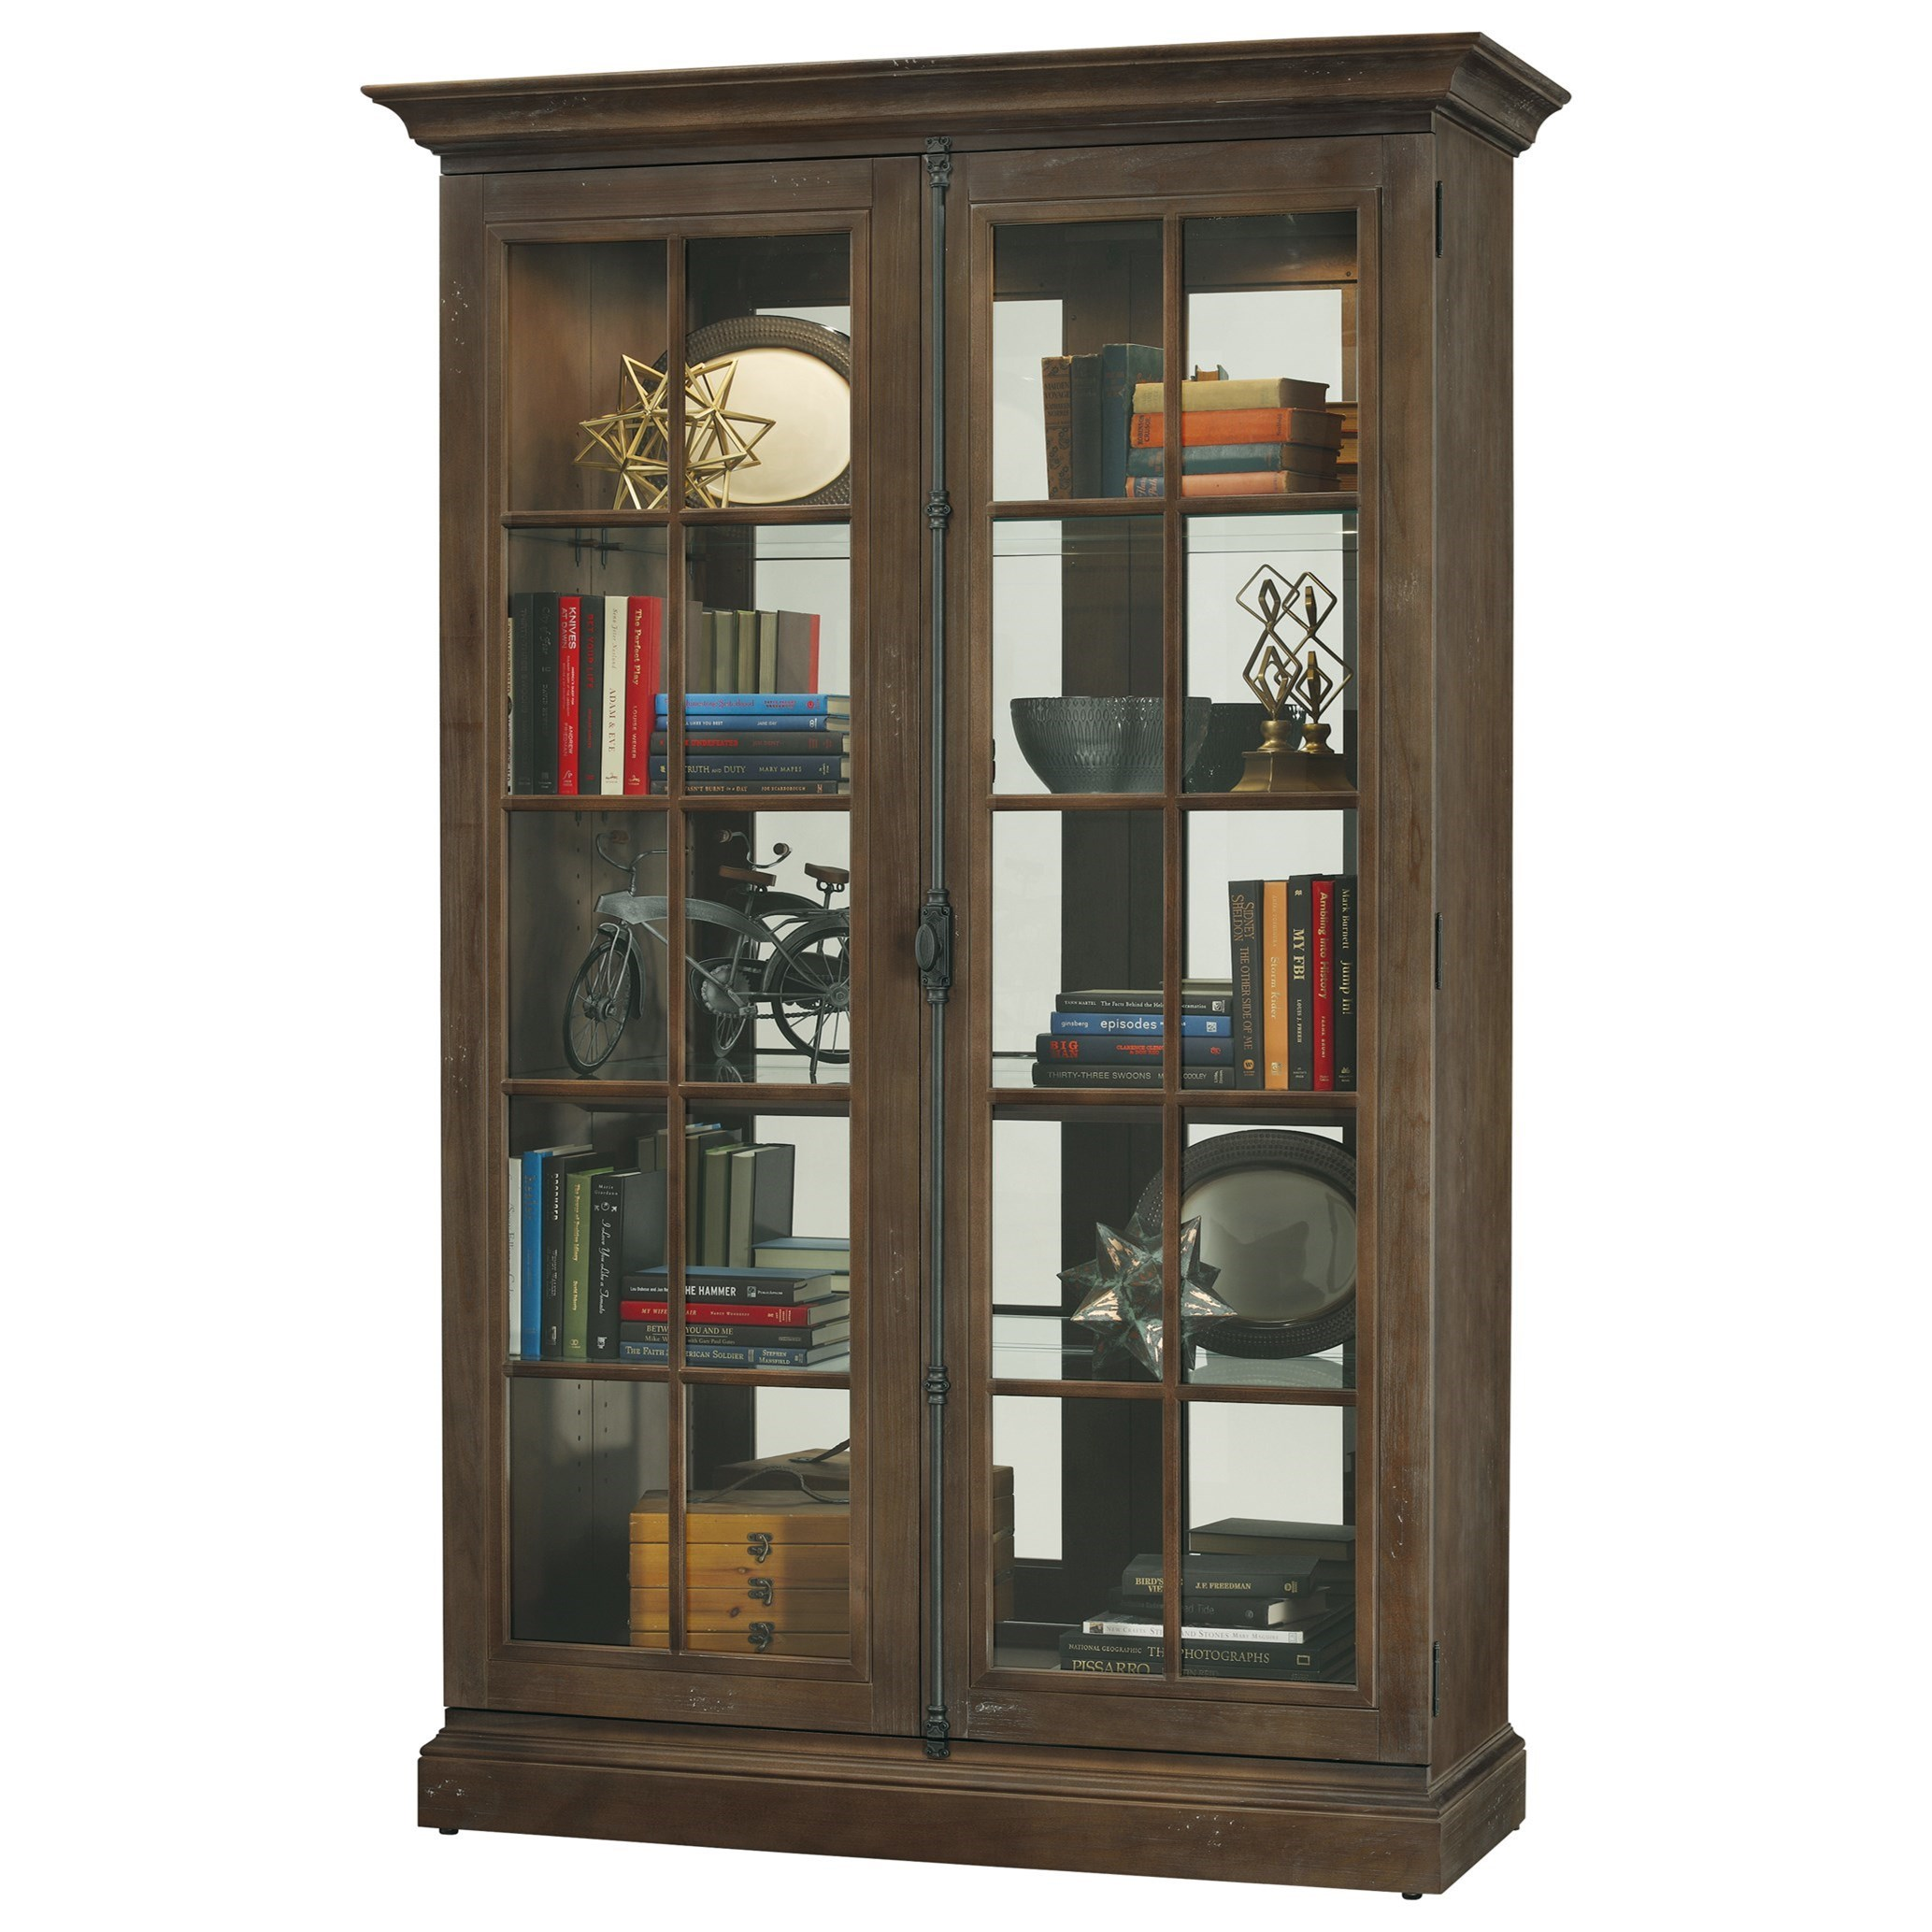 Howard Miller Cabinets Clawson Door Cabinet with